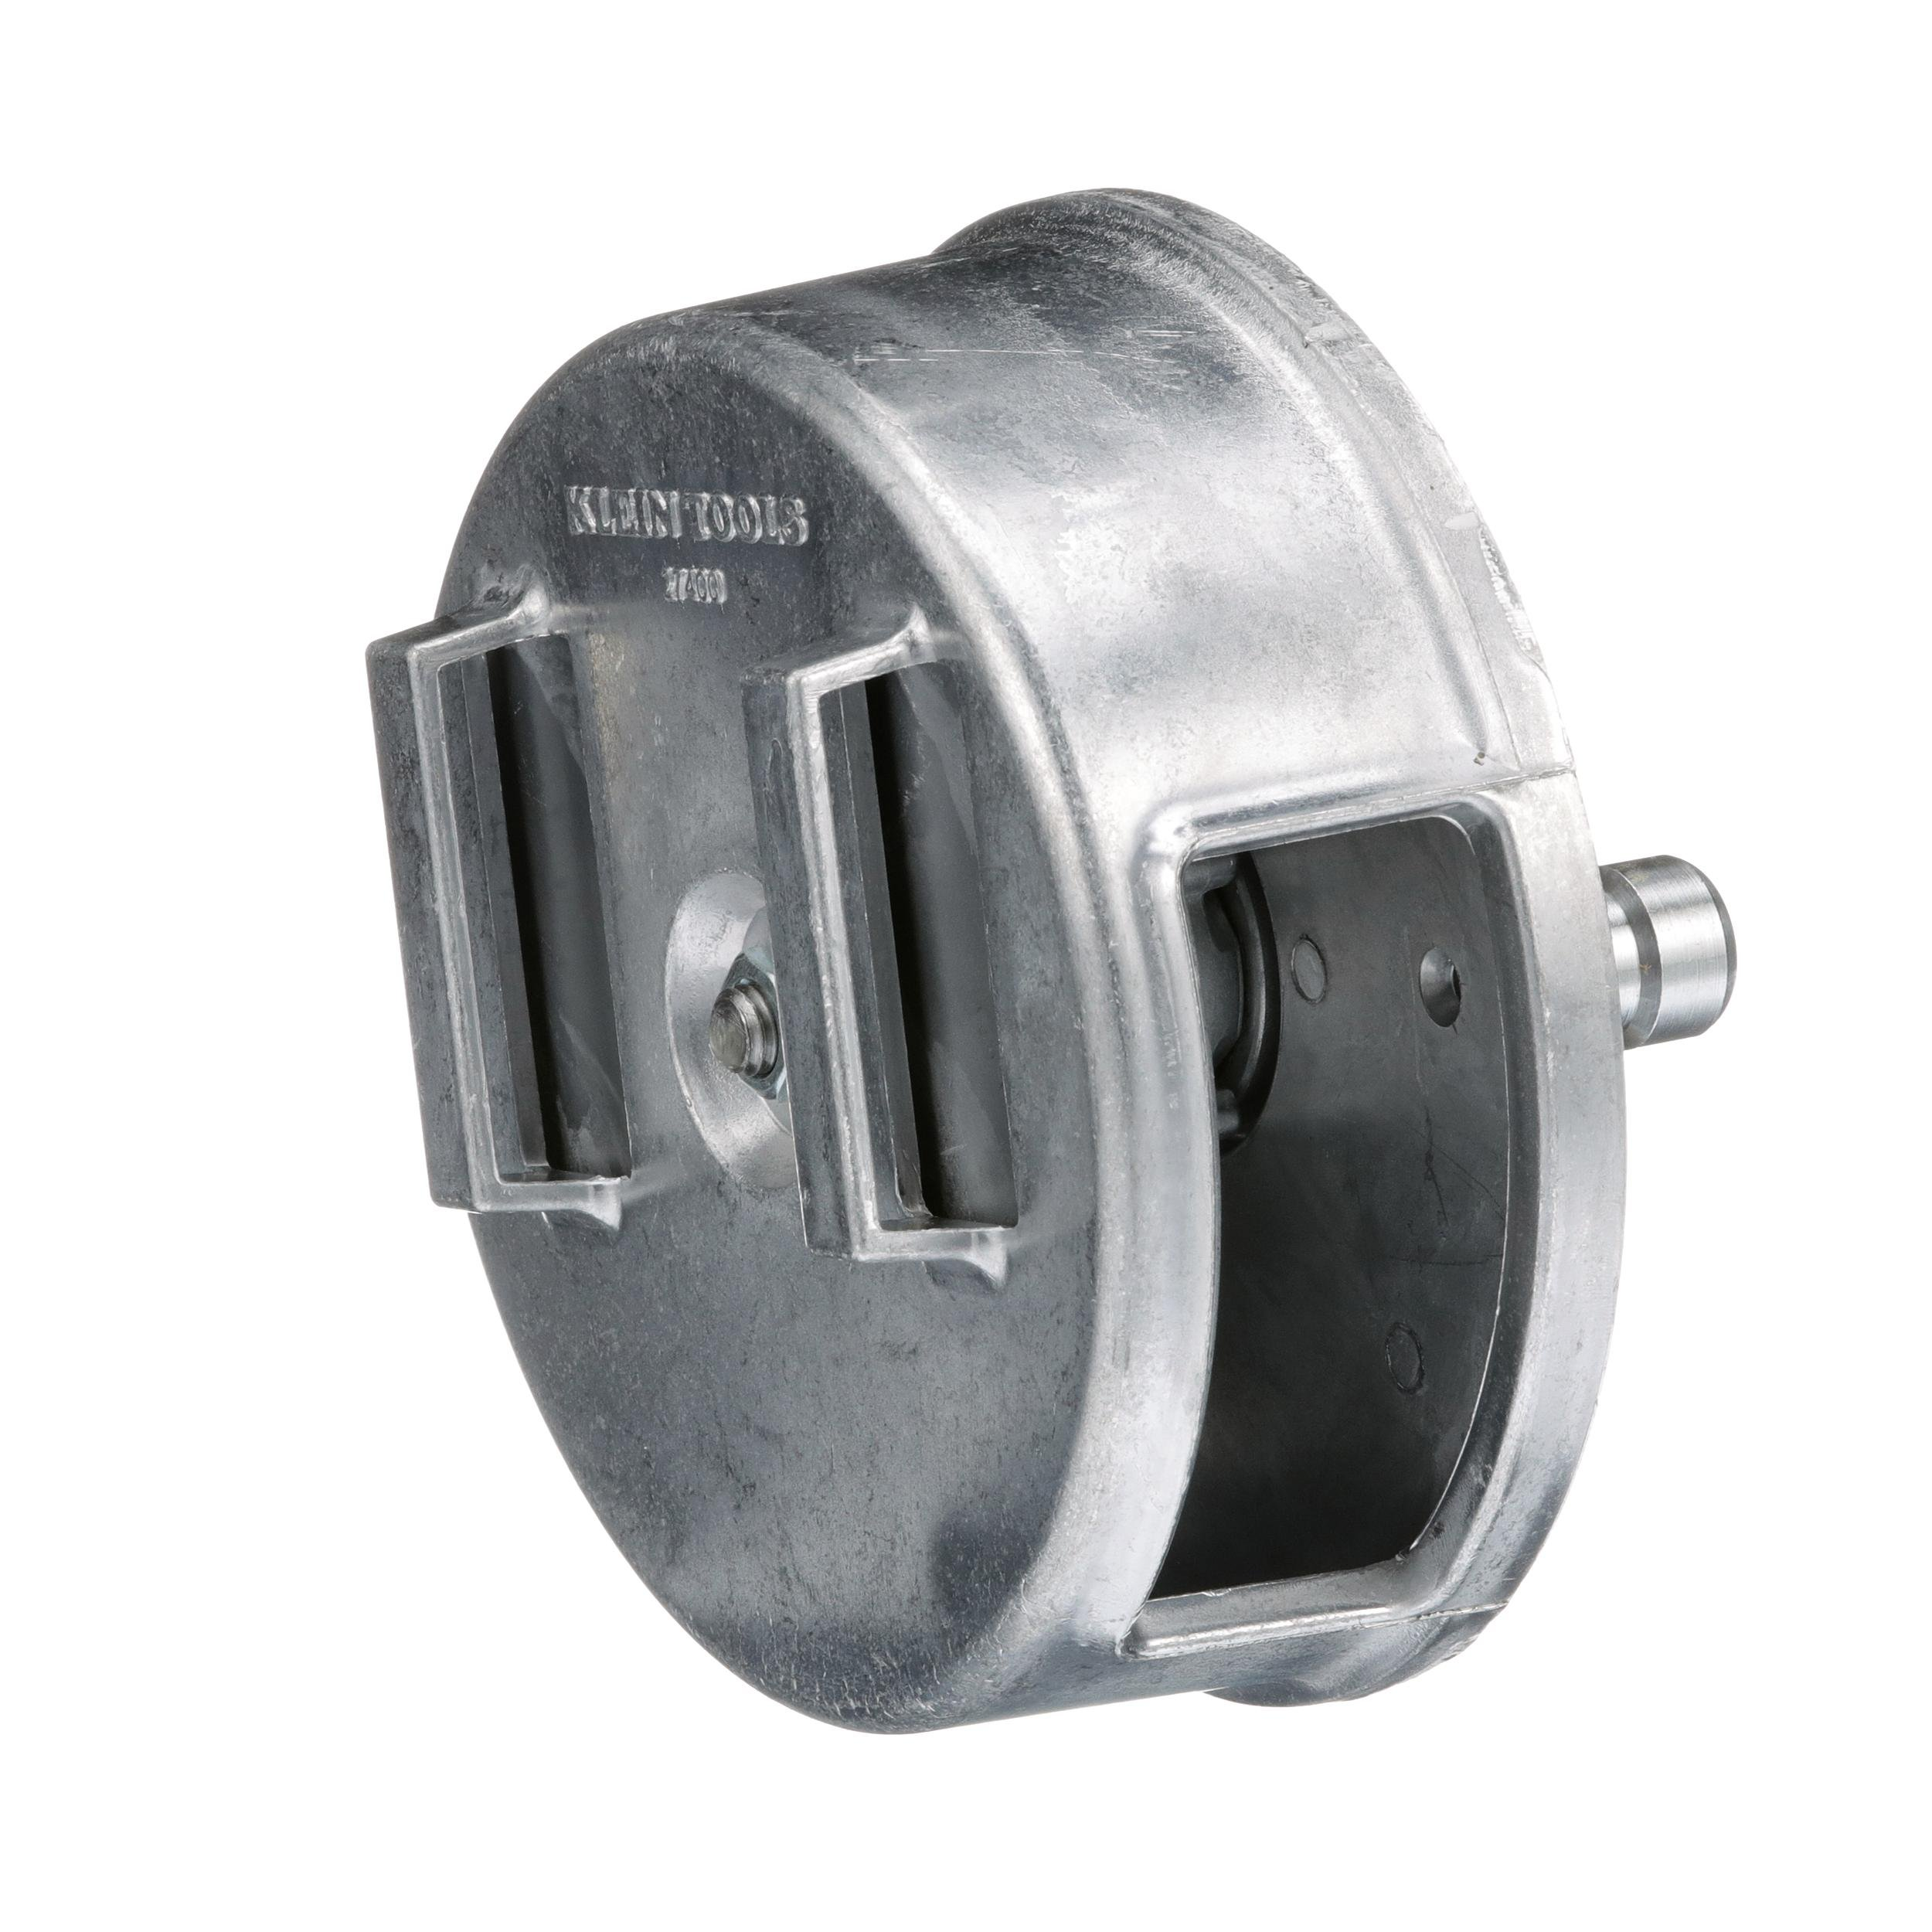 Tie-Wire Reel, Lightweight Aluminum, Left Handed and Right Handed Klein Tools 27400